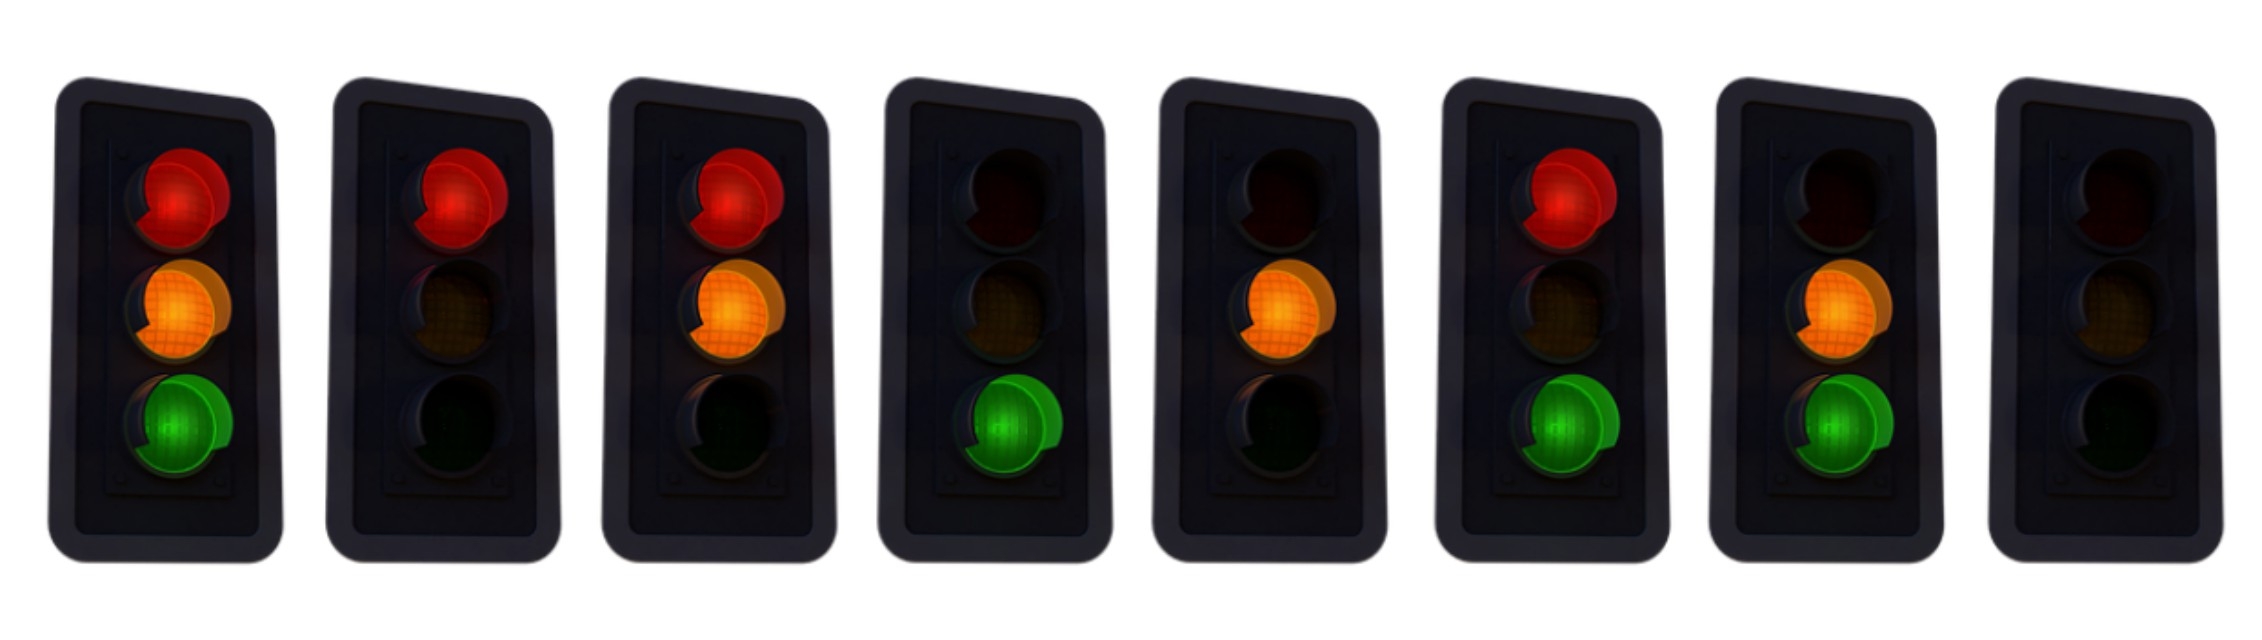 If only everyone would obey the traffic light signals correctly - image via Pixabay